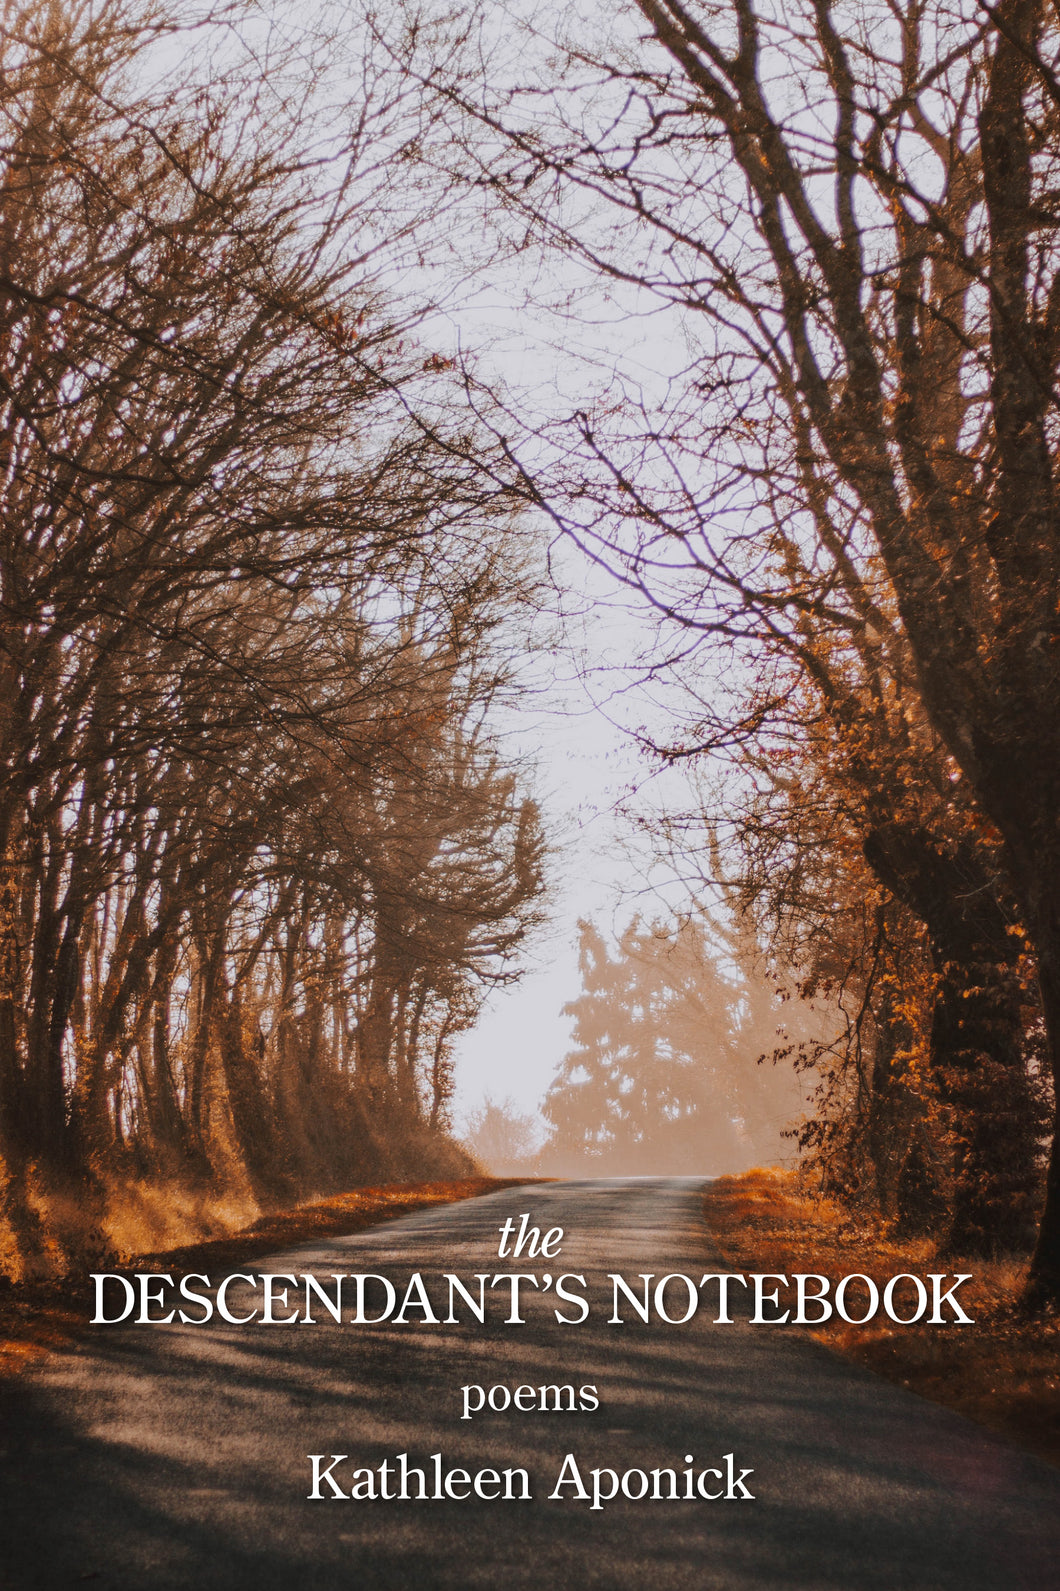 The Descendant's Notebook